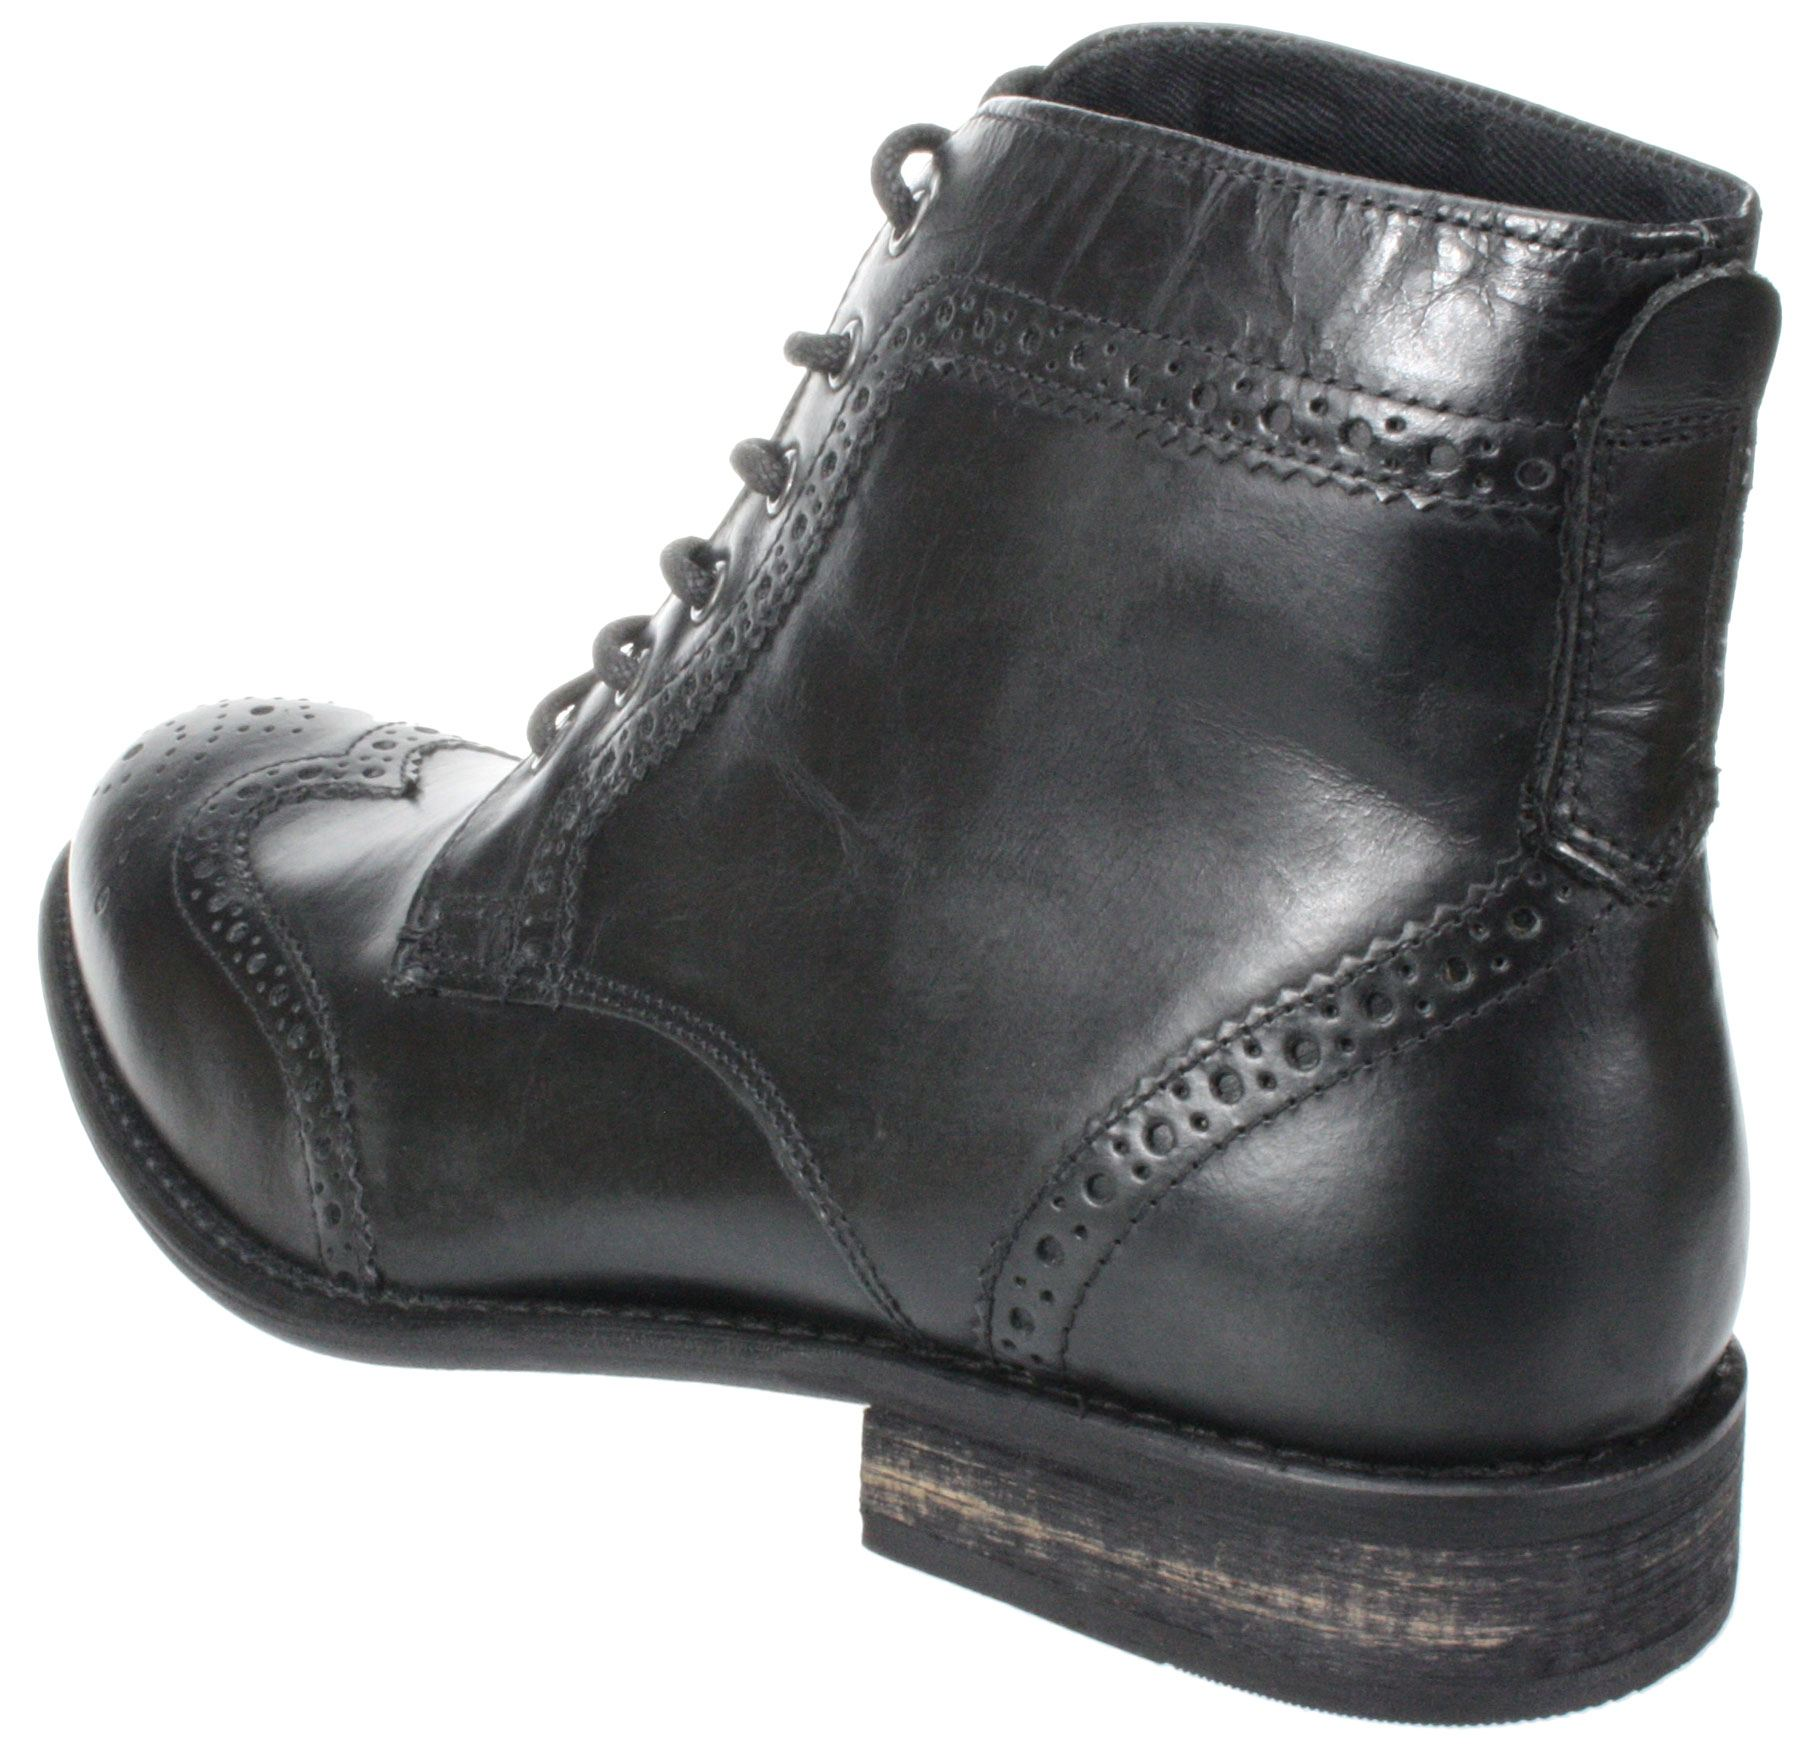 65f03731 Details about Mens Red tape Nant black brown lace up leather brogue ankle  boots High Quality